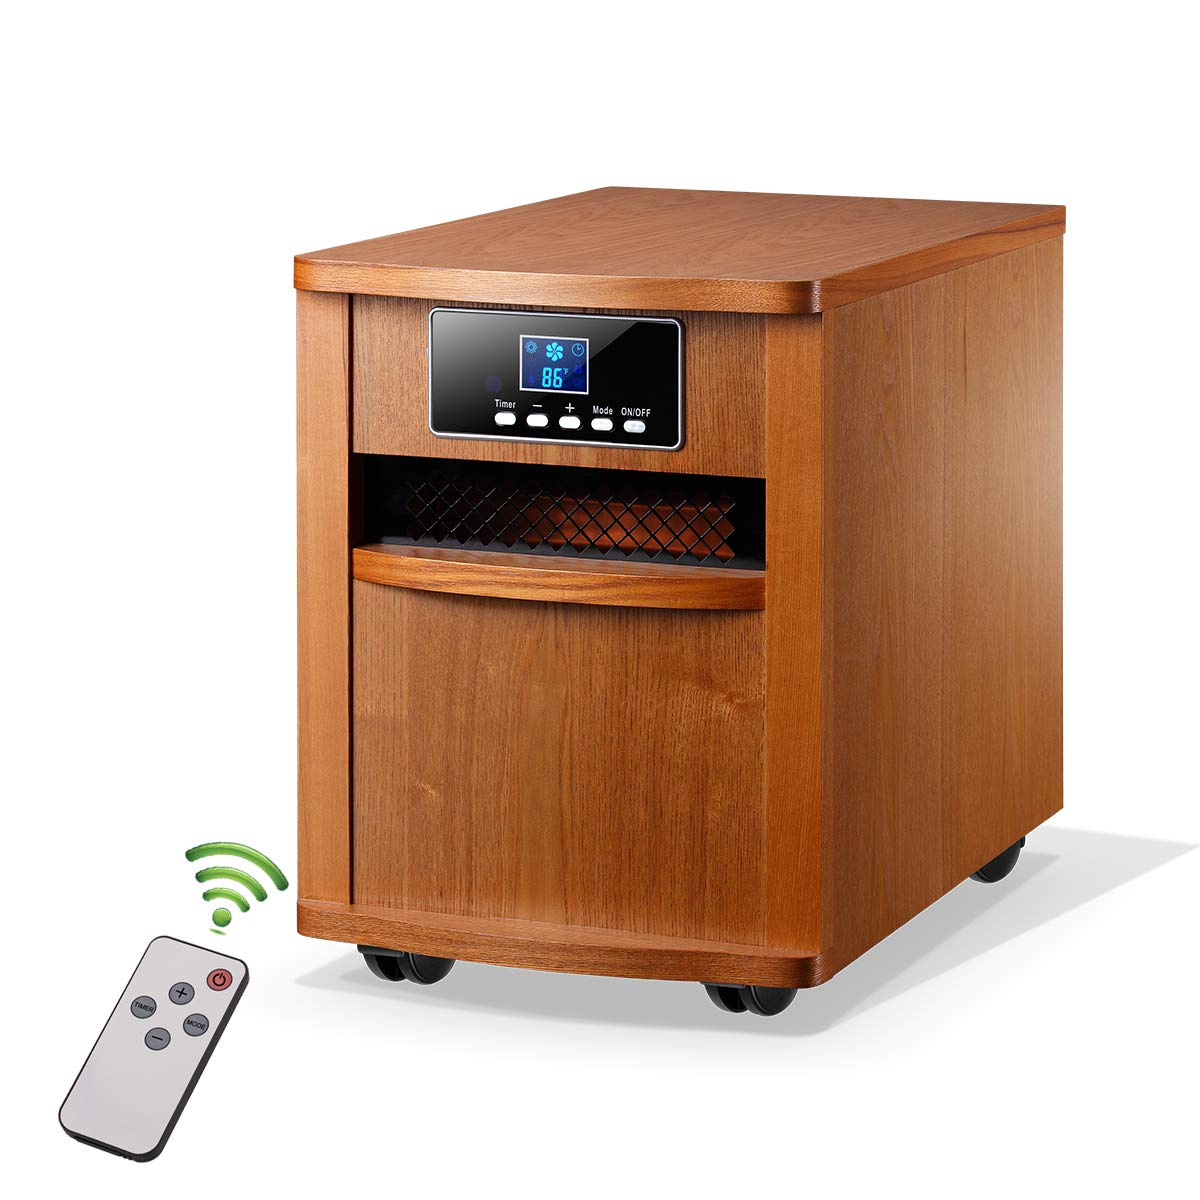 Homeleader Infrared Heater Portable Space Heater, with Remote Control, Digital Infrared Quartz Heater, 1500W, IWH-01